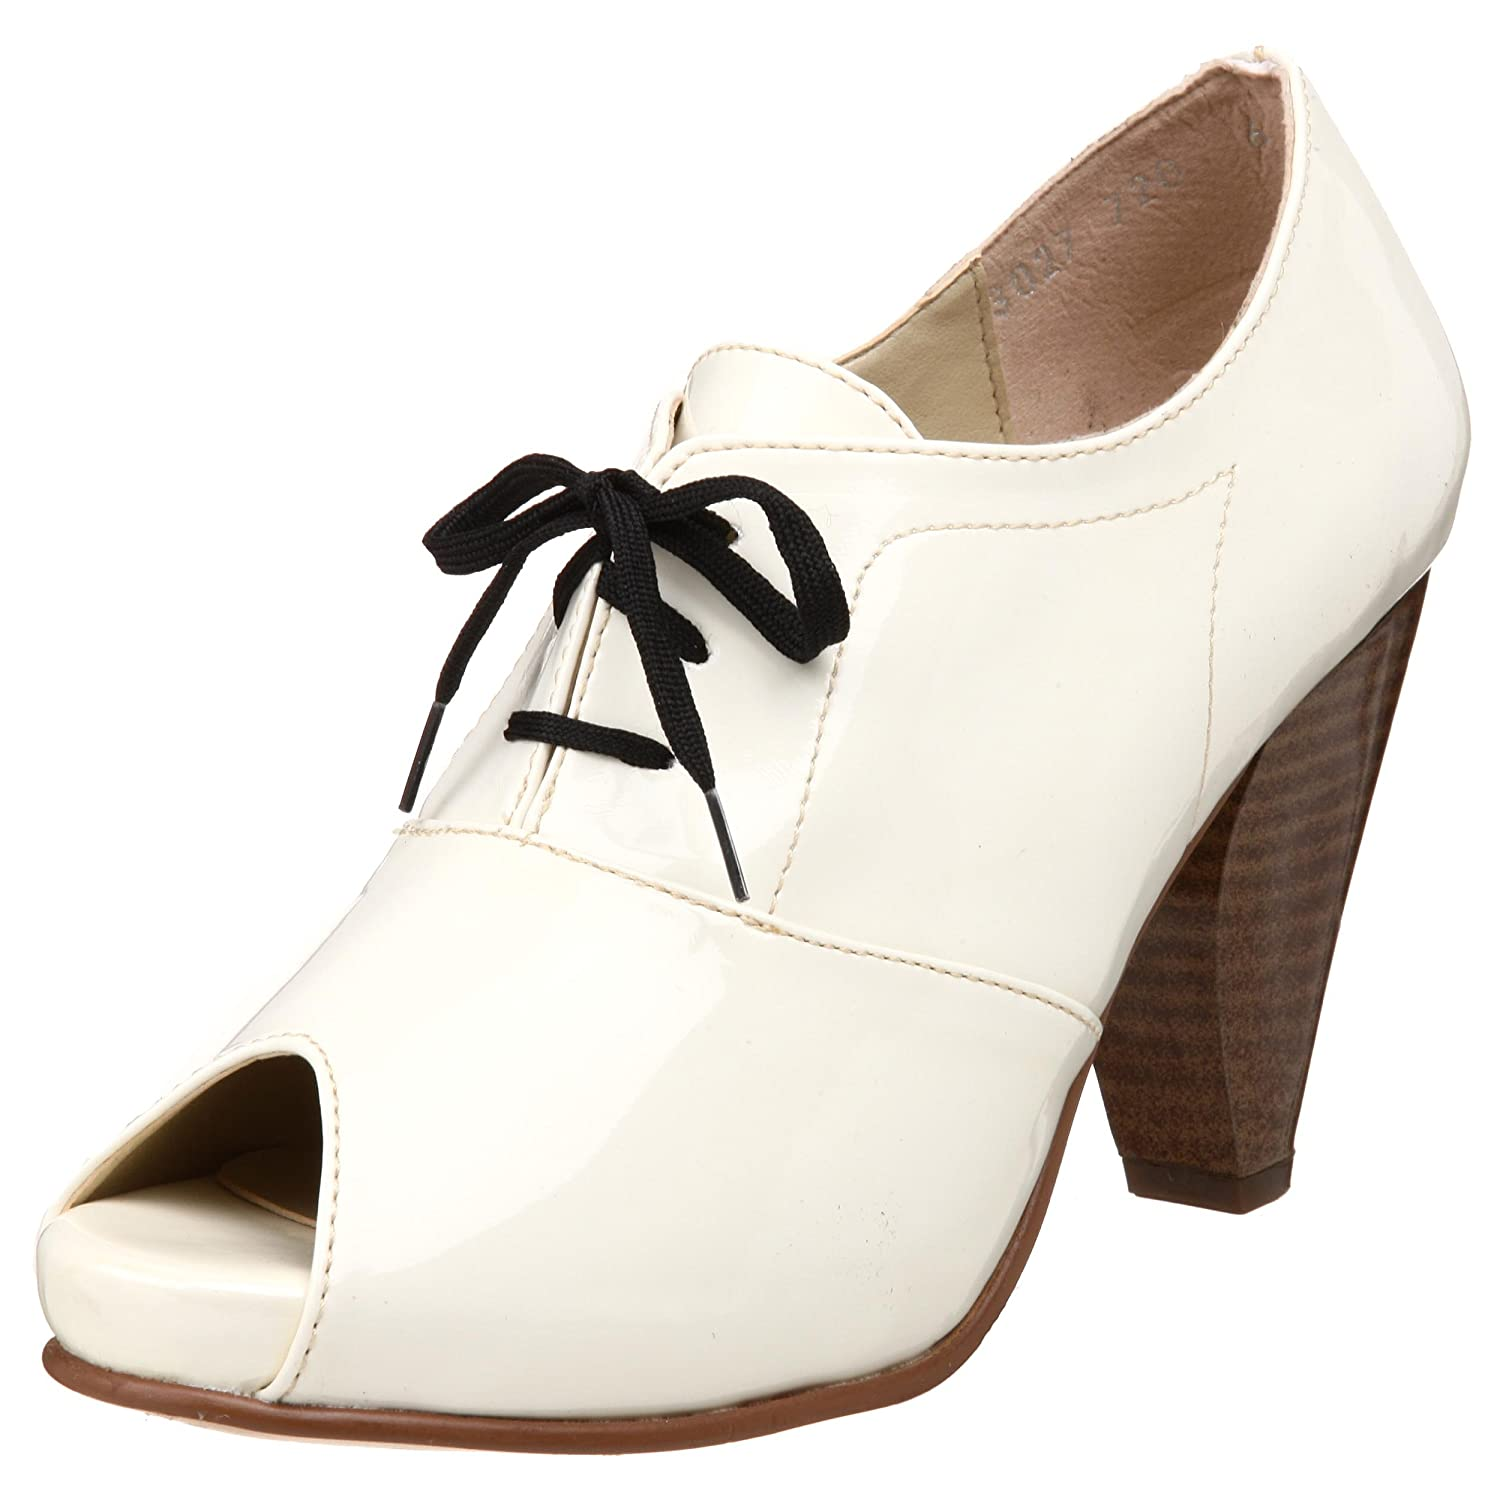 olsenHaus Women's Charm Oxford  :  peeptoe shoes womens shoes peeptoe menswear inspired